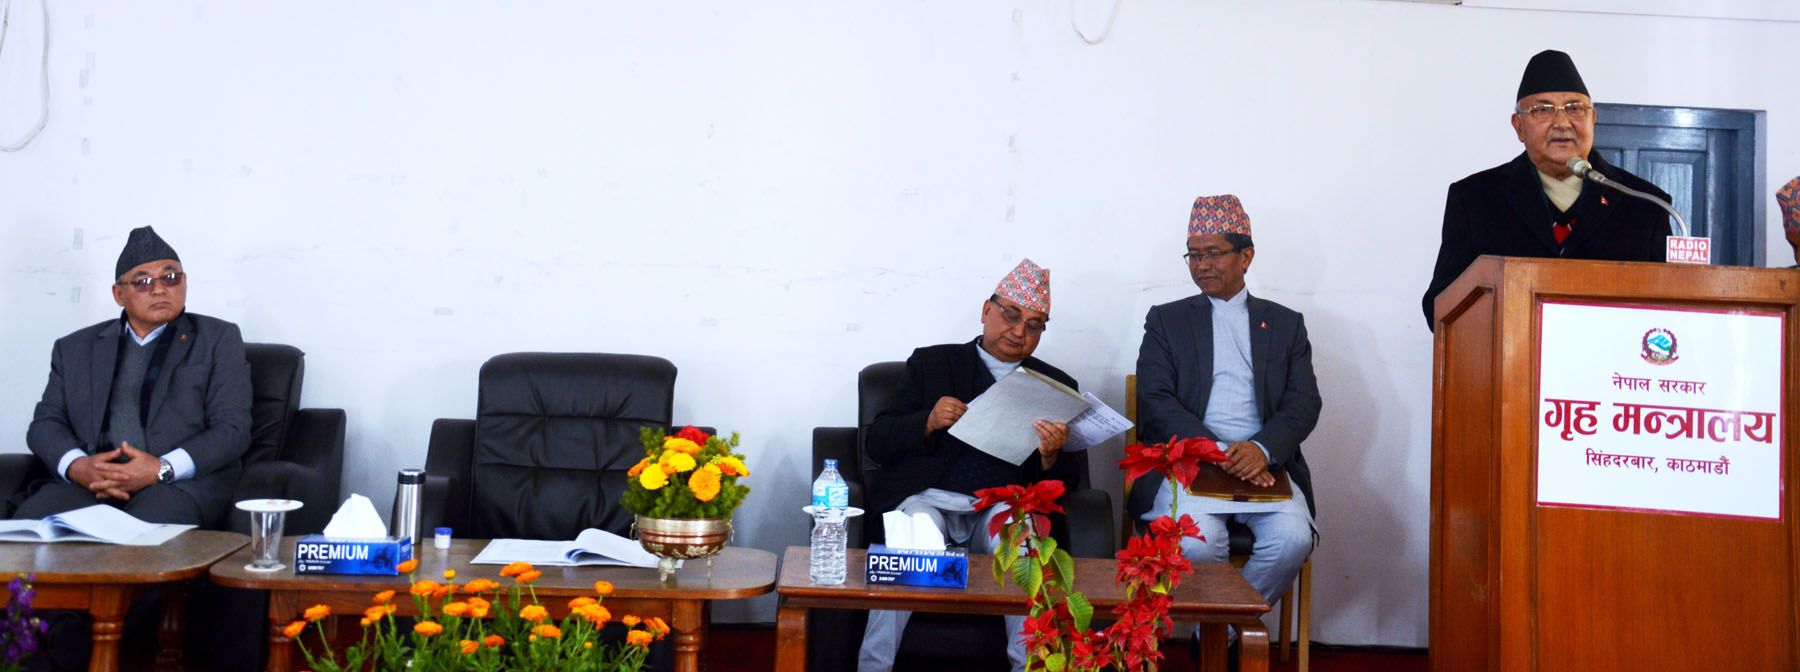 PM Oli urges govt officials to utilize their rights to execute their duties responsibly